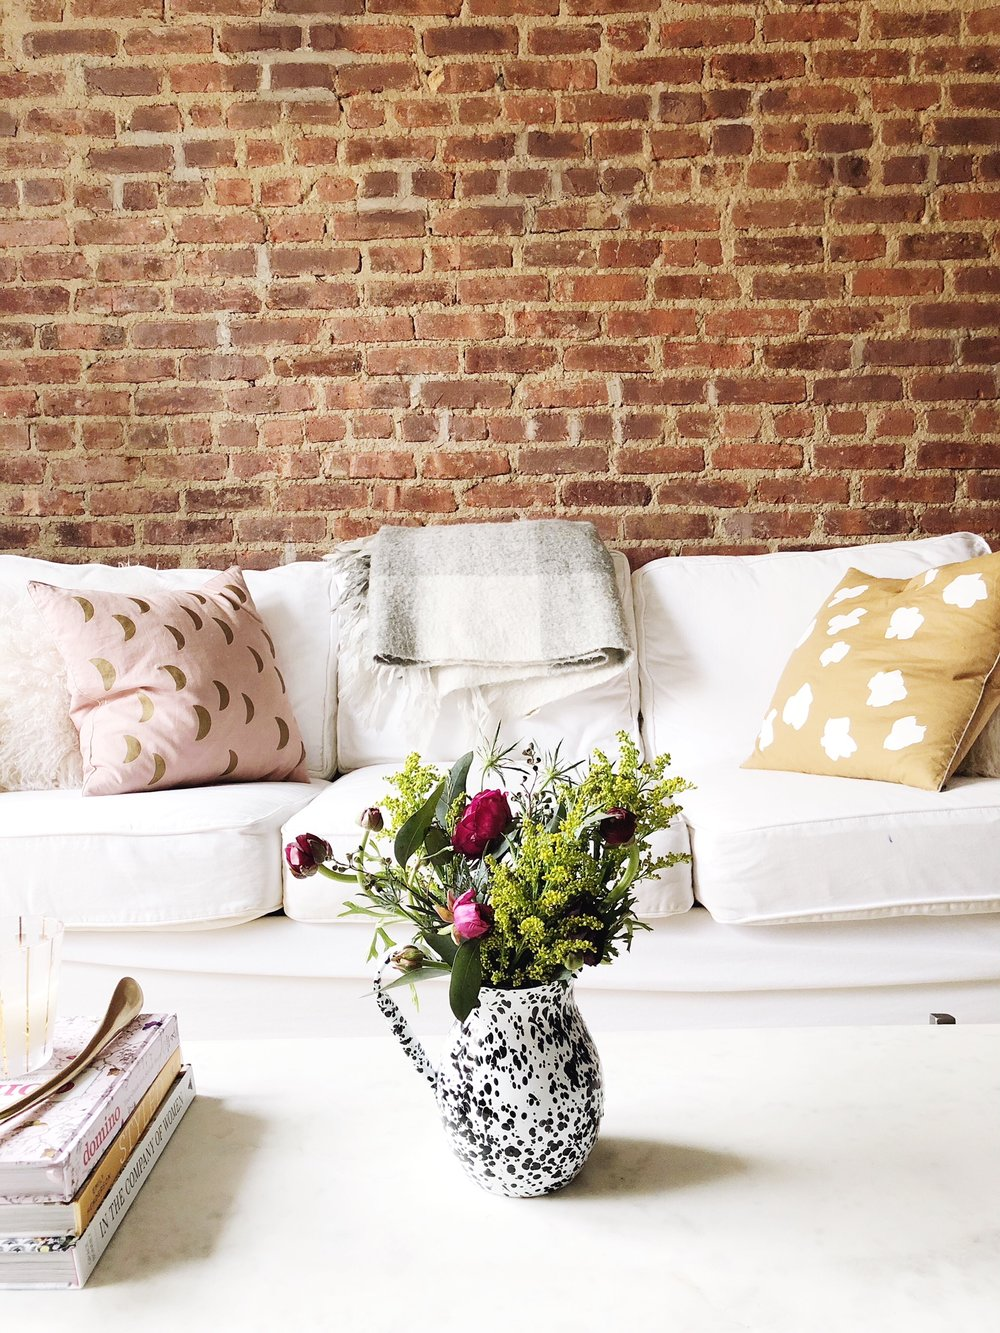 TGA Couch Exposed Brick.JPG